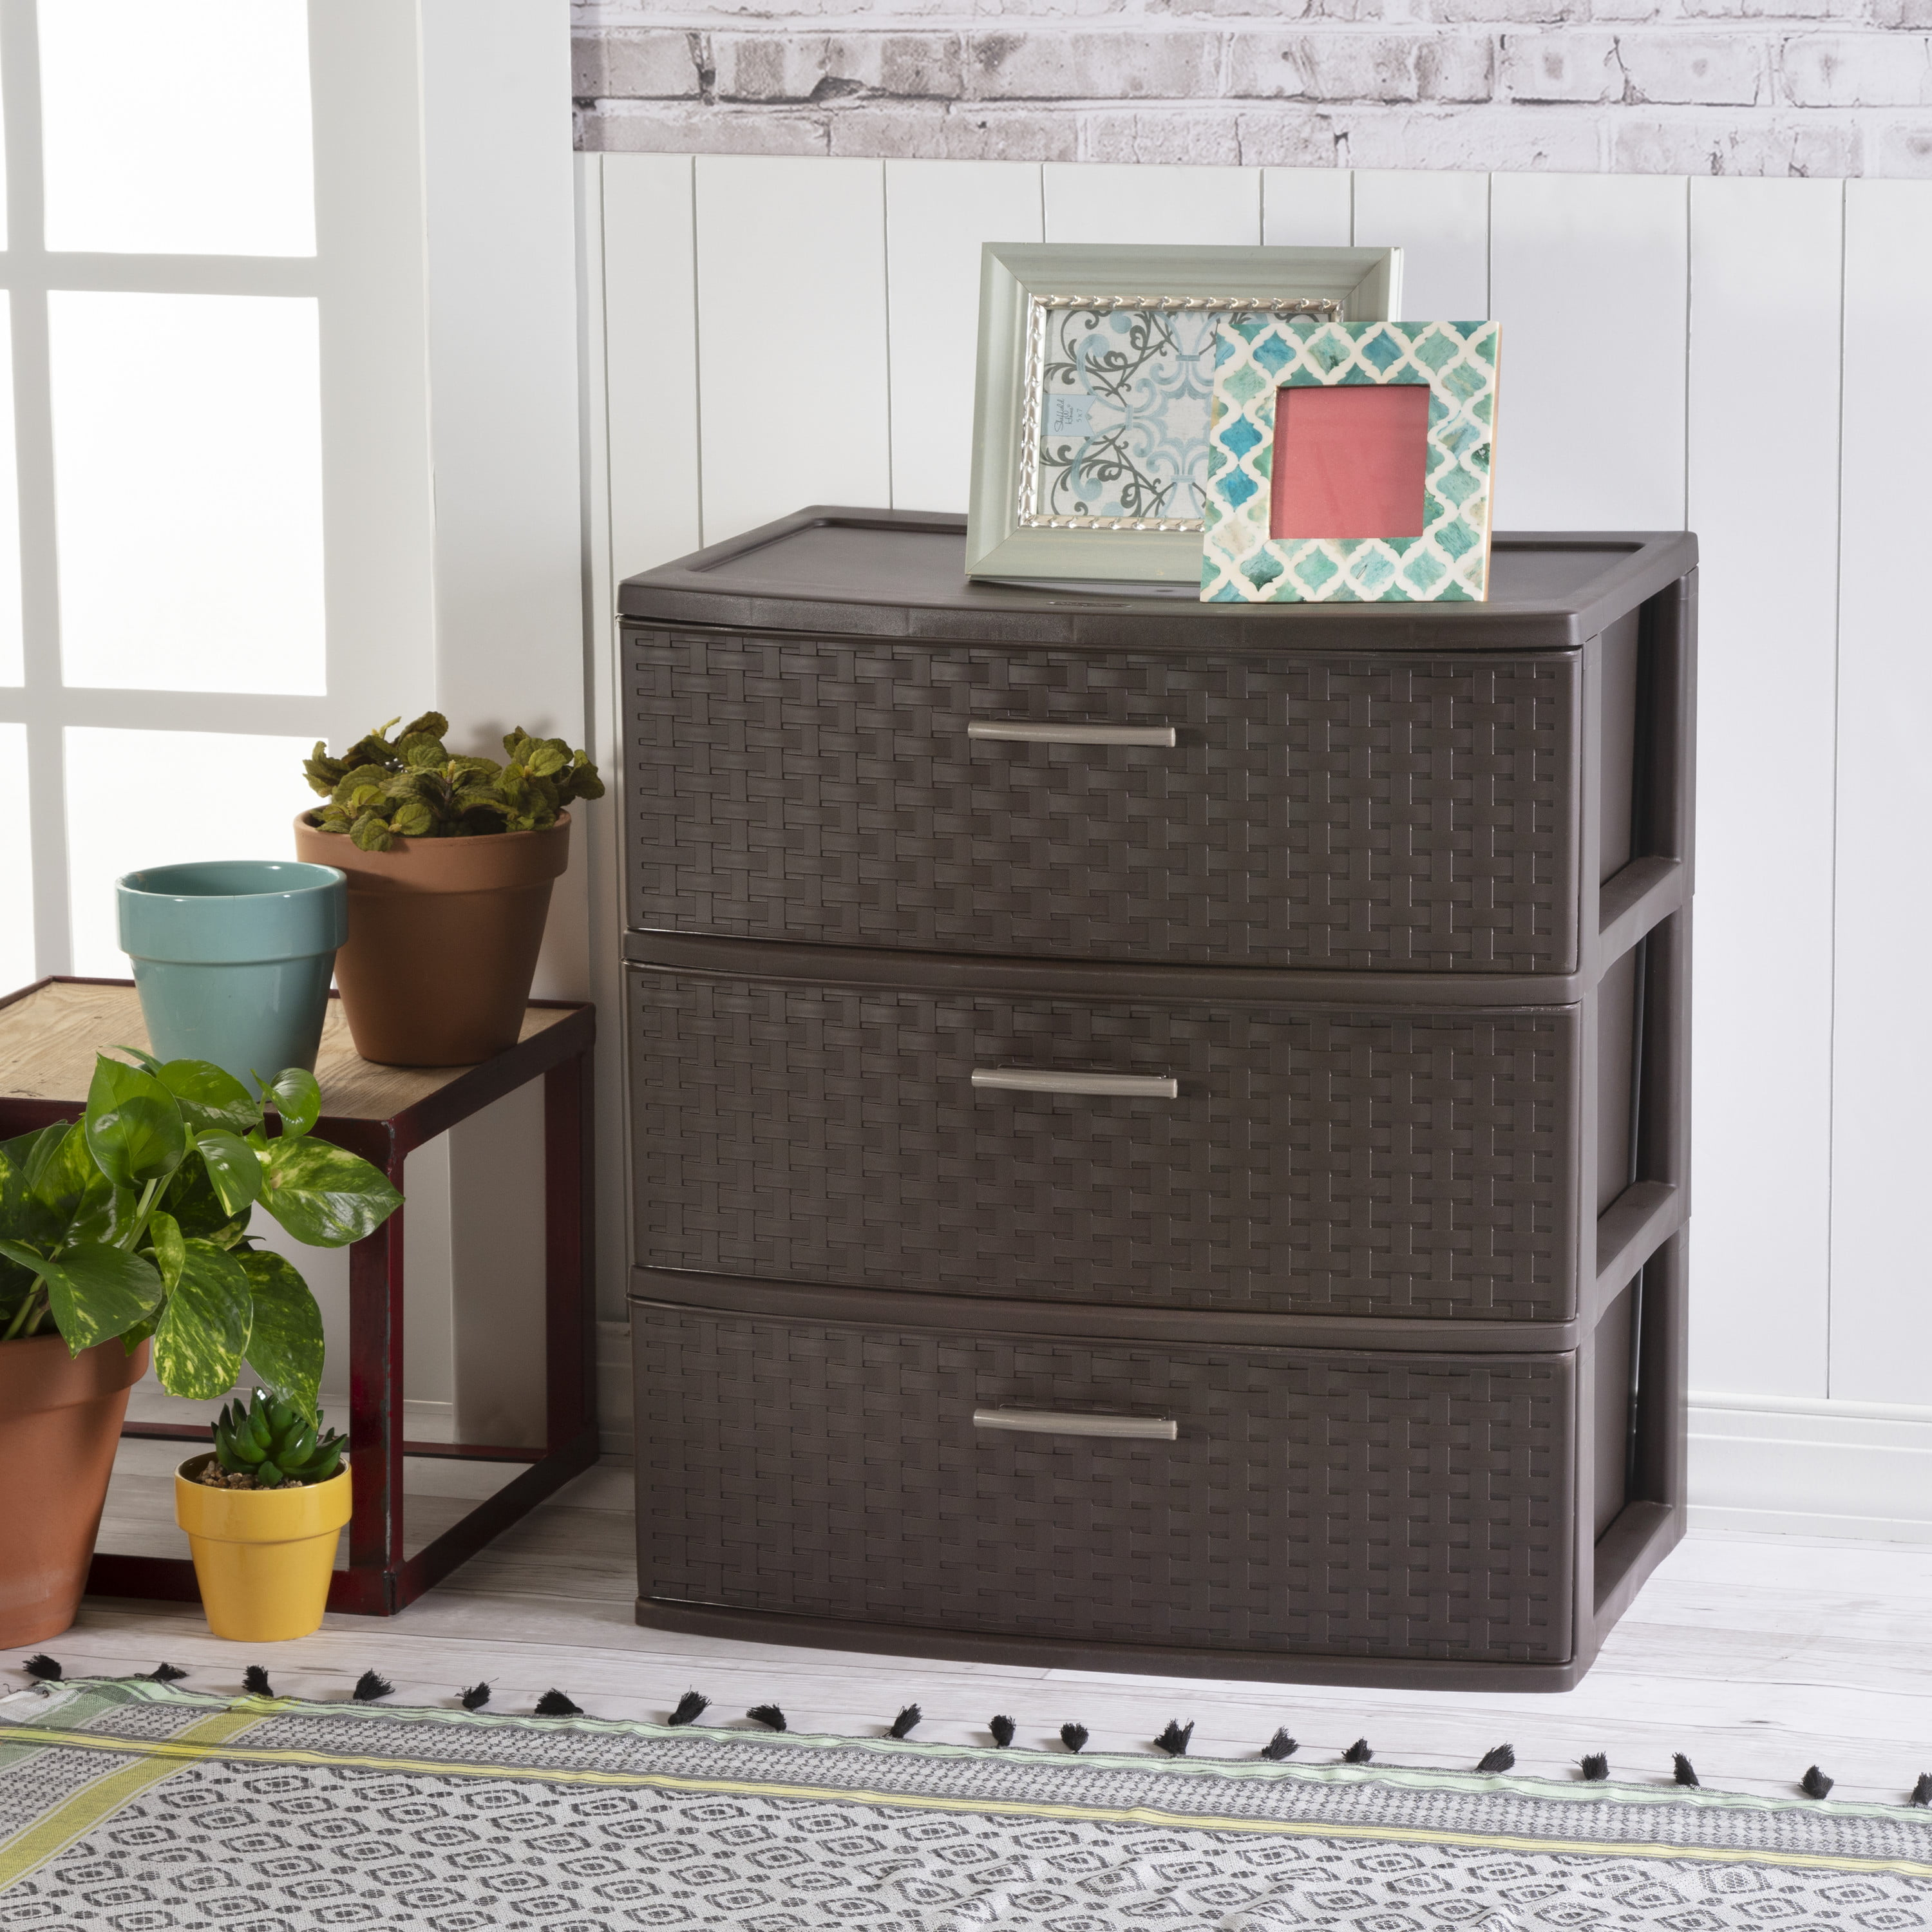 Sterilite 01986P01 3 Weave Drawer Unit 1-Pack Espresso with Driftwood Handles and Legs